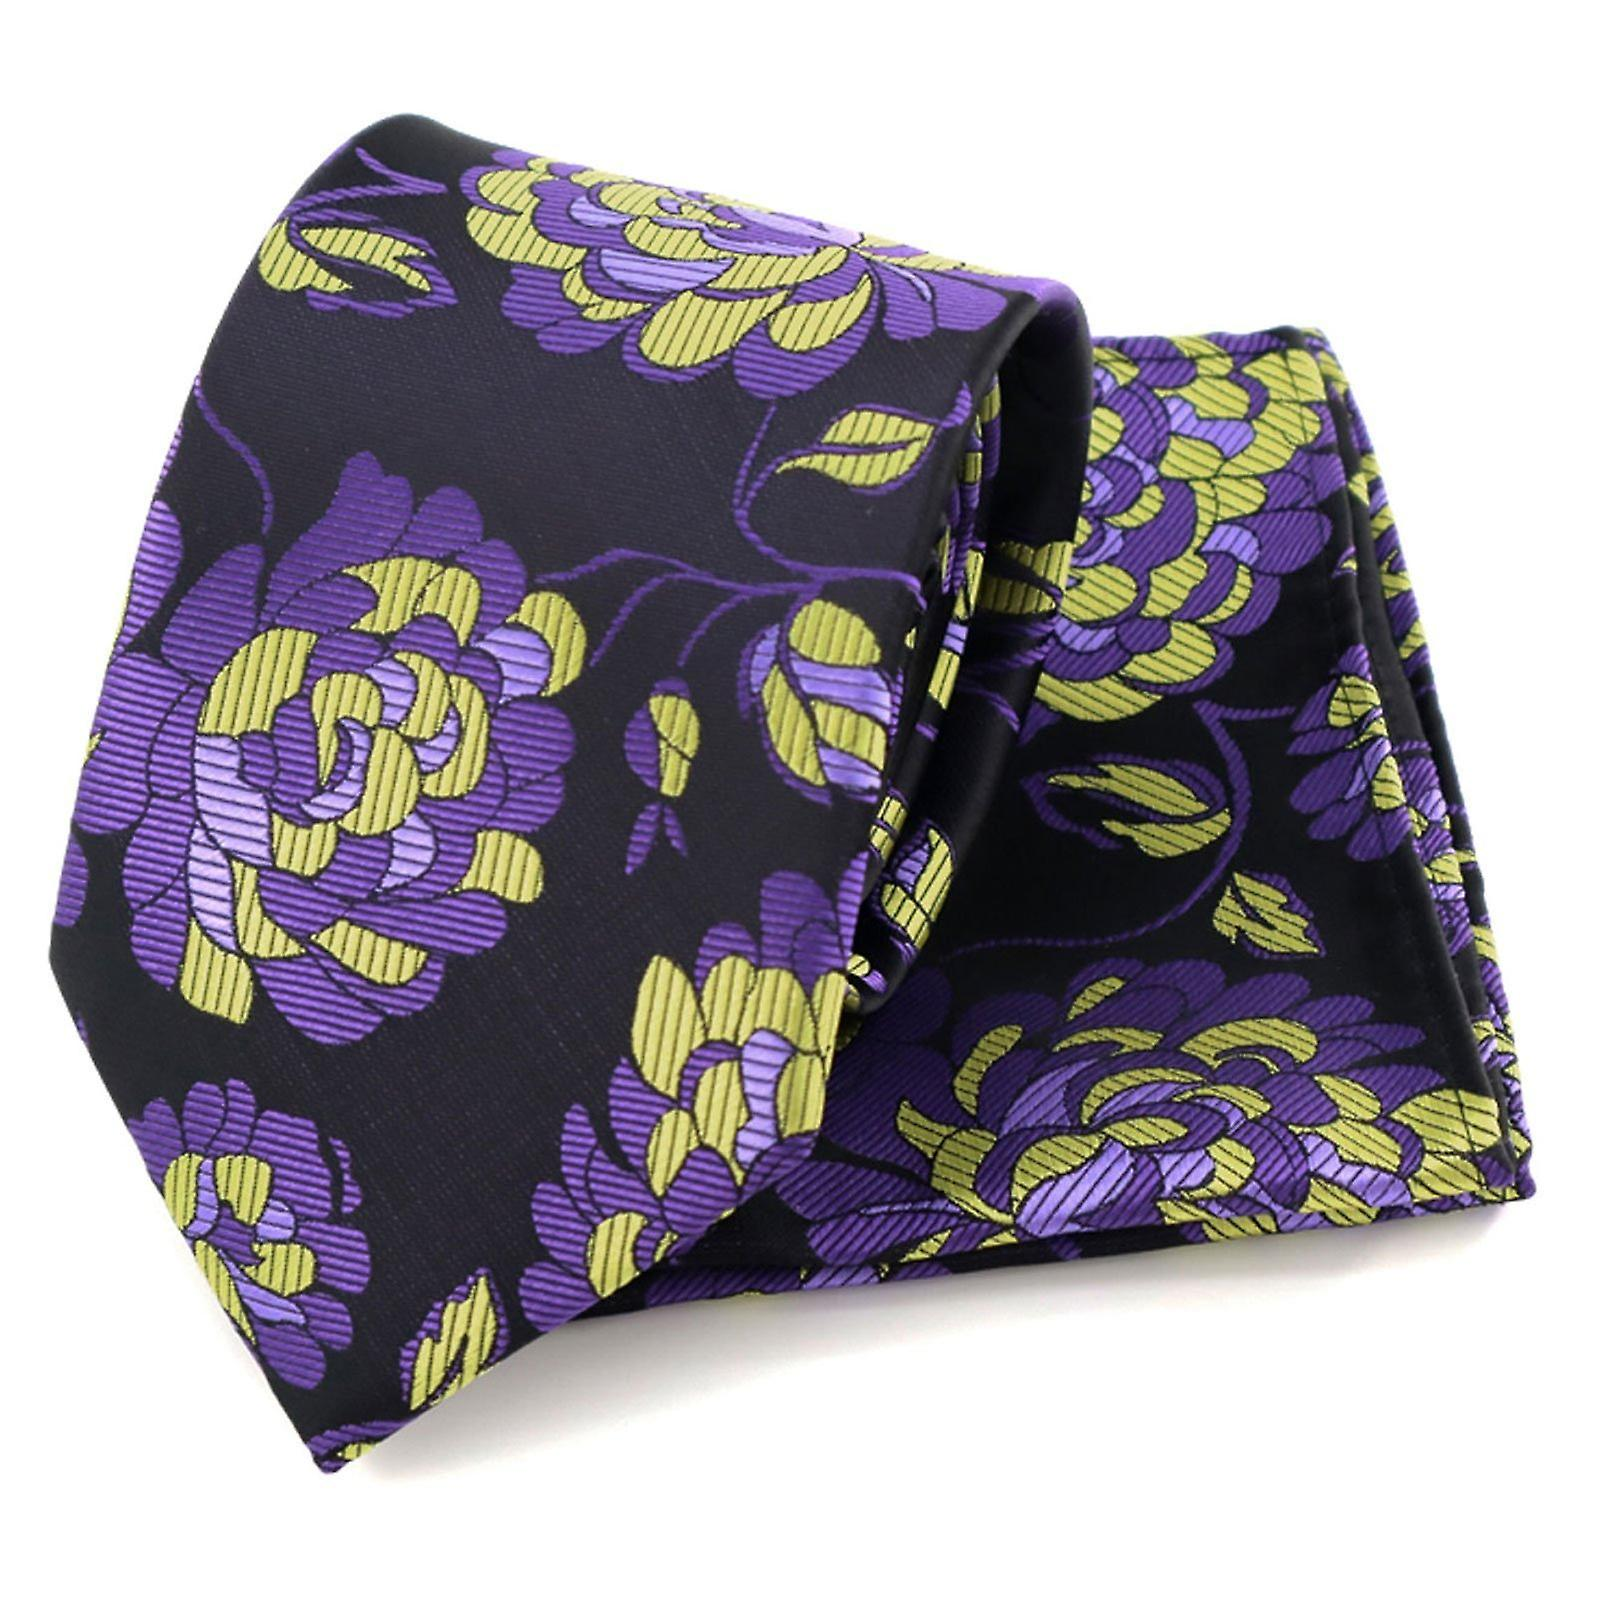 Purple & yellow floral pattern tie & pocket square set